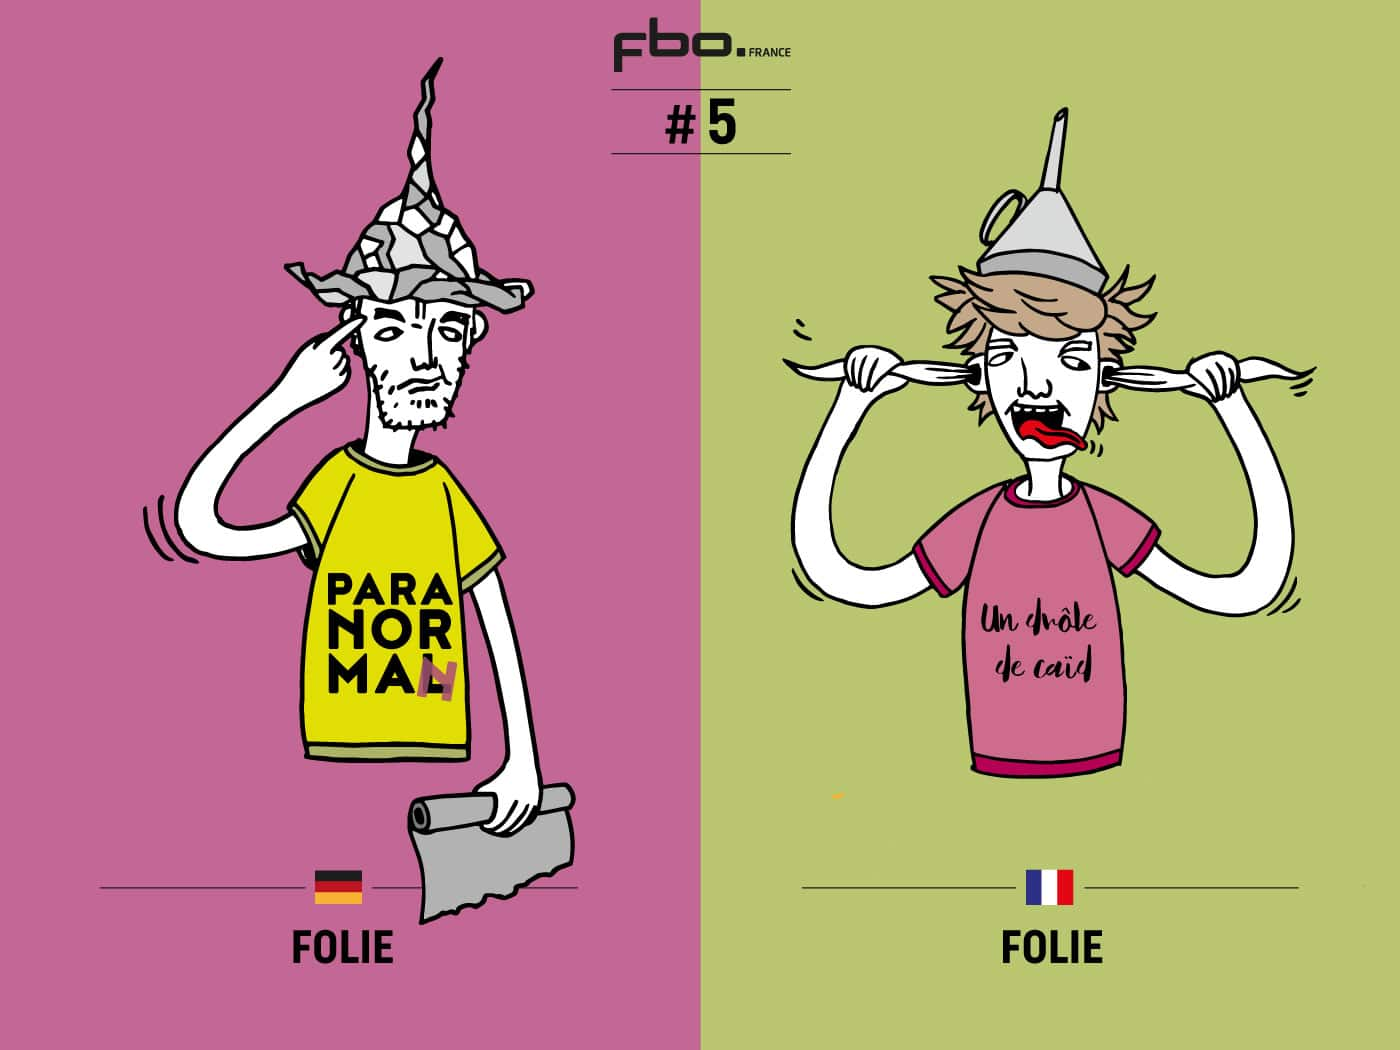 FBO_France – Folie